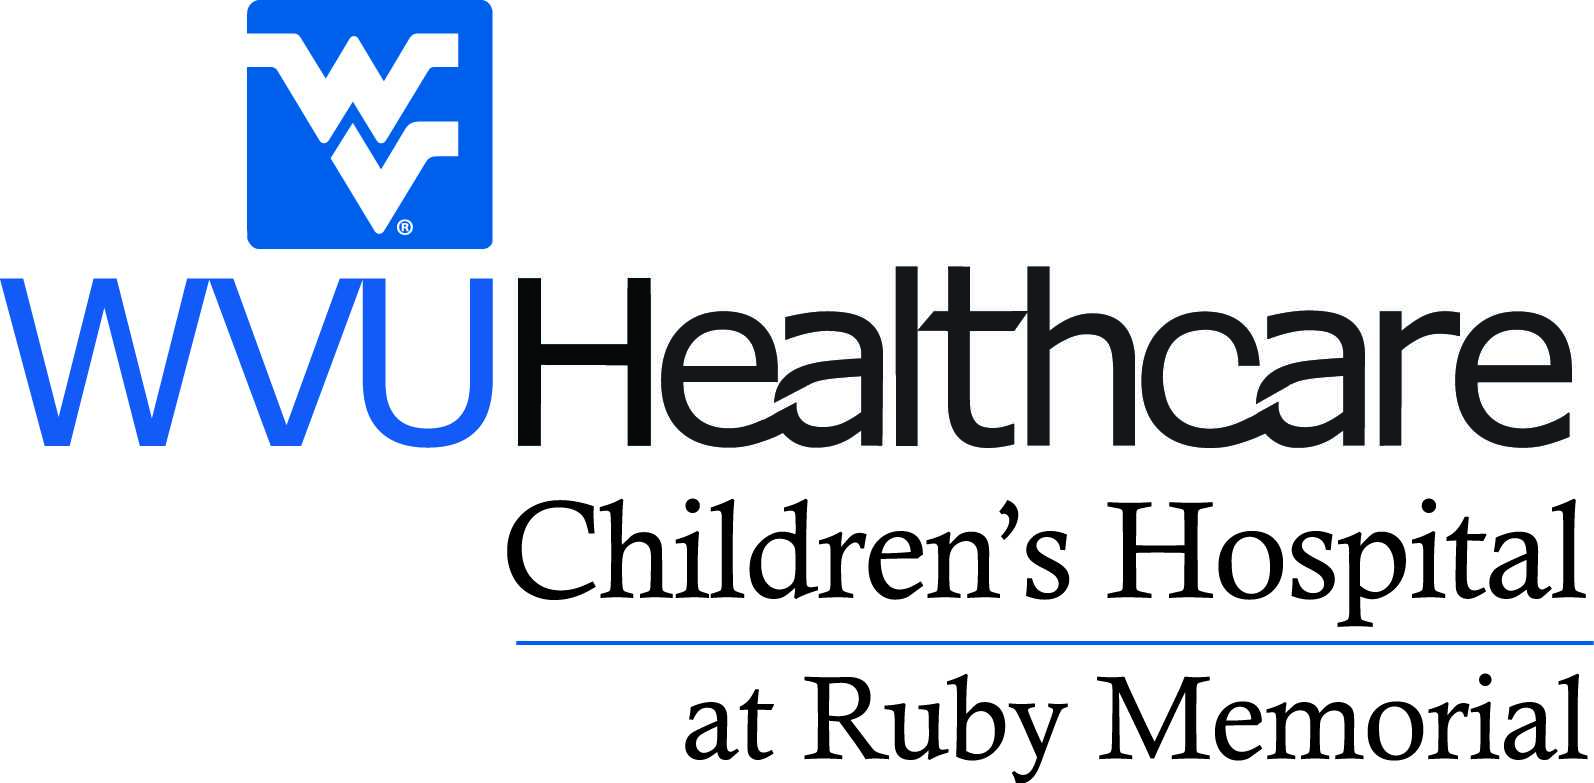 WVU Healthcare Children's Hospital At Ruby Memoria